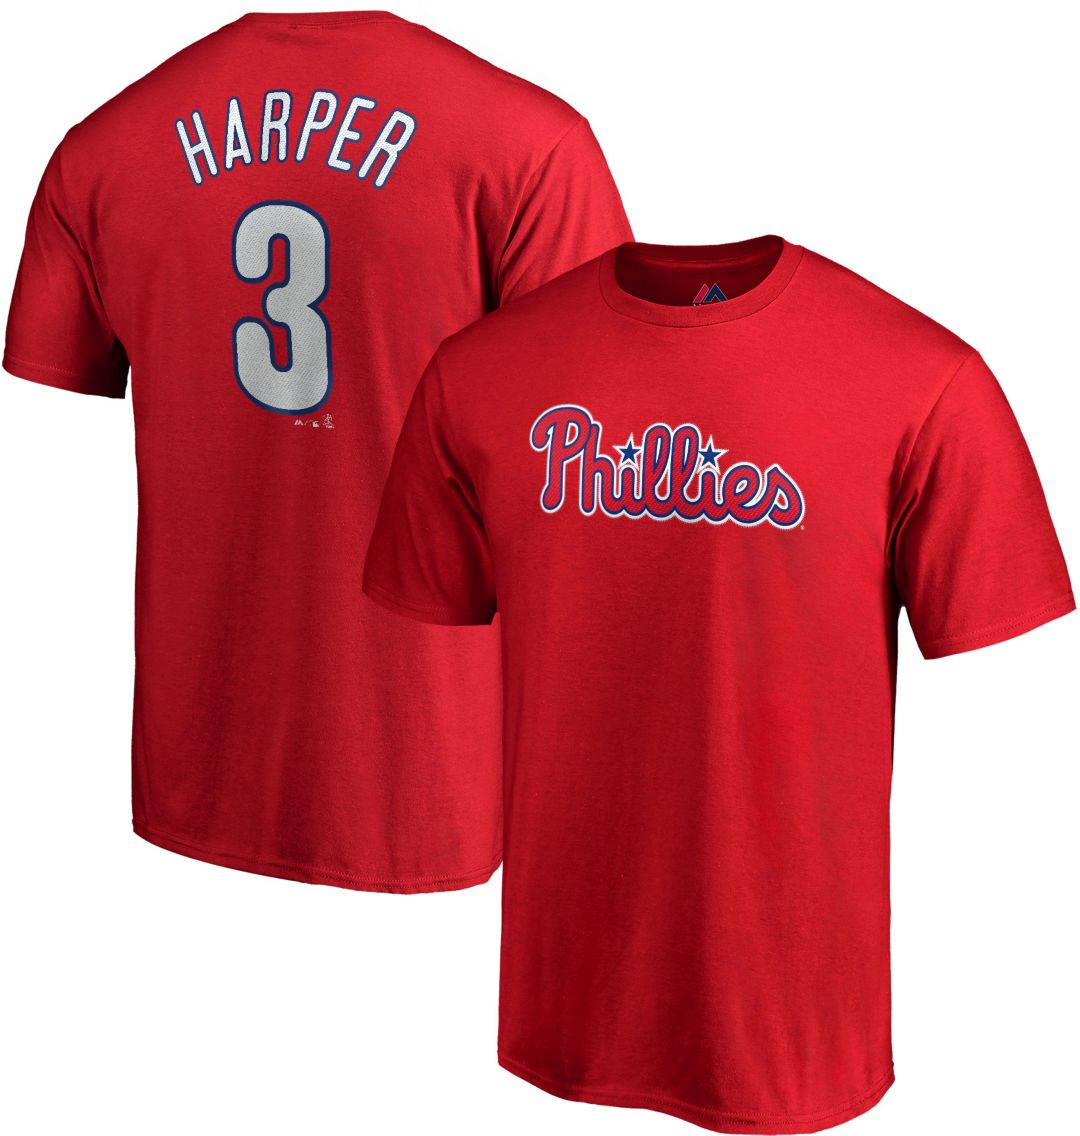 new concept 87e58 c7041 Majestic Youth Philadelphia Phillies Bryce Harper #3 Red T-Shirt